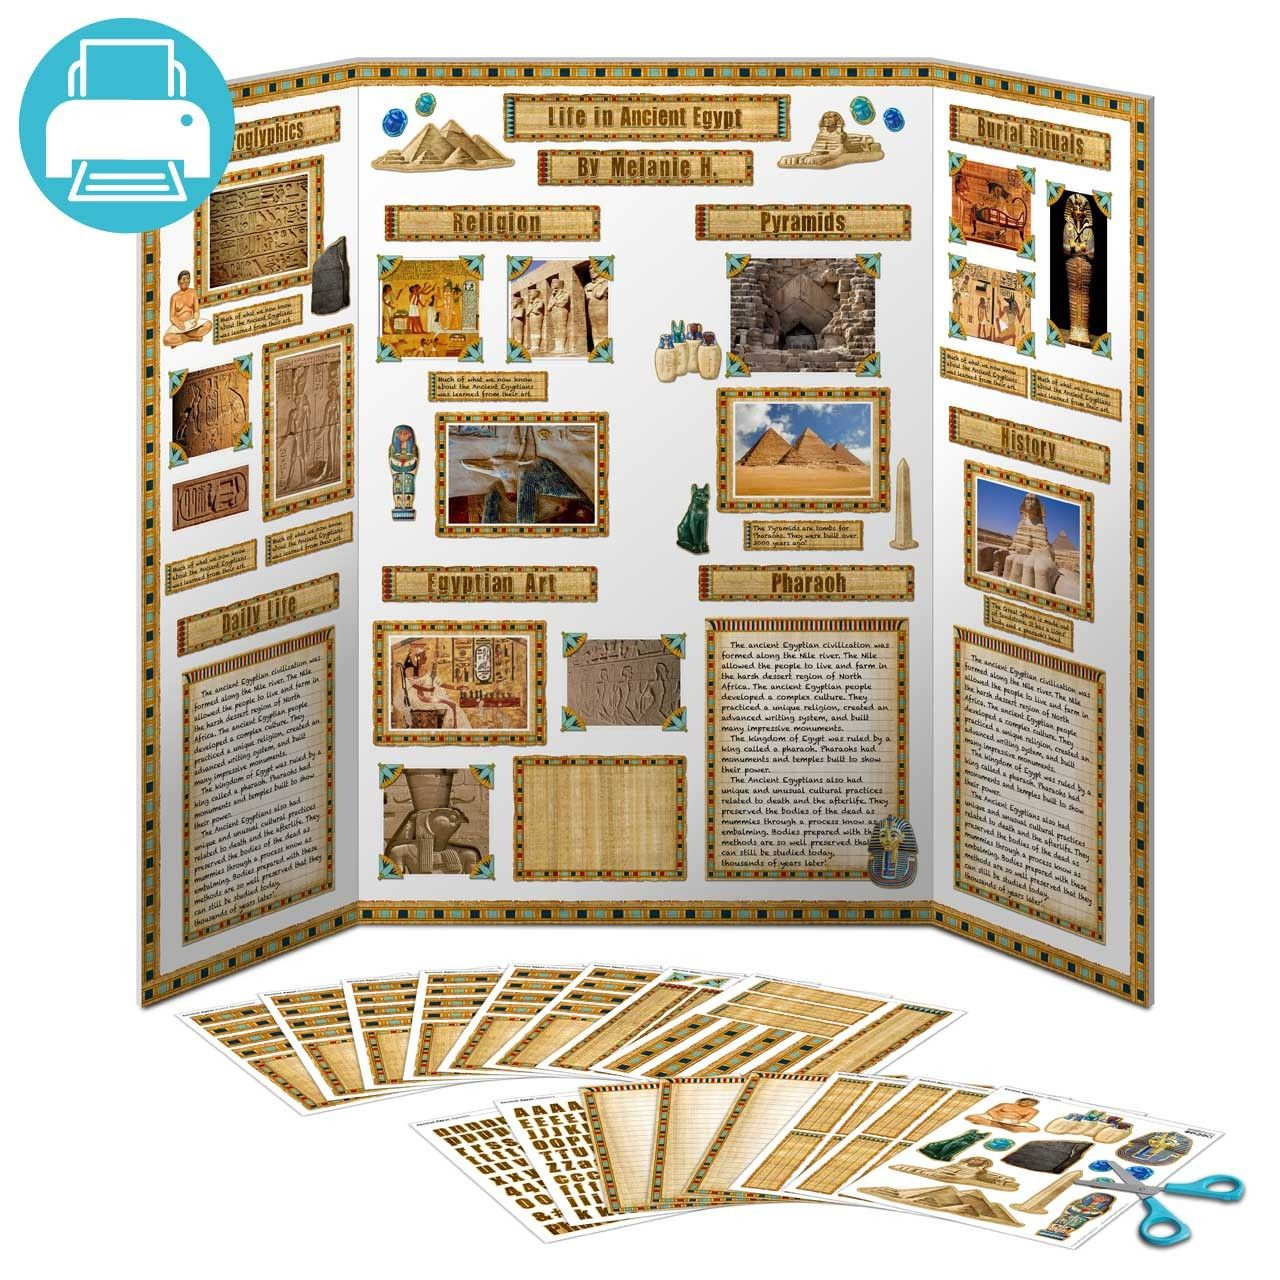 School Project Printables Ancient Egypt Large Poster Decorations Printable Decorations For An Entire Tri Fold Poster Including Titles Writing Paper